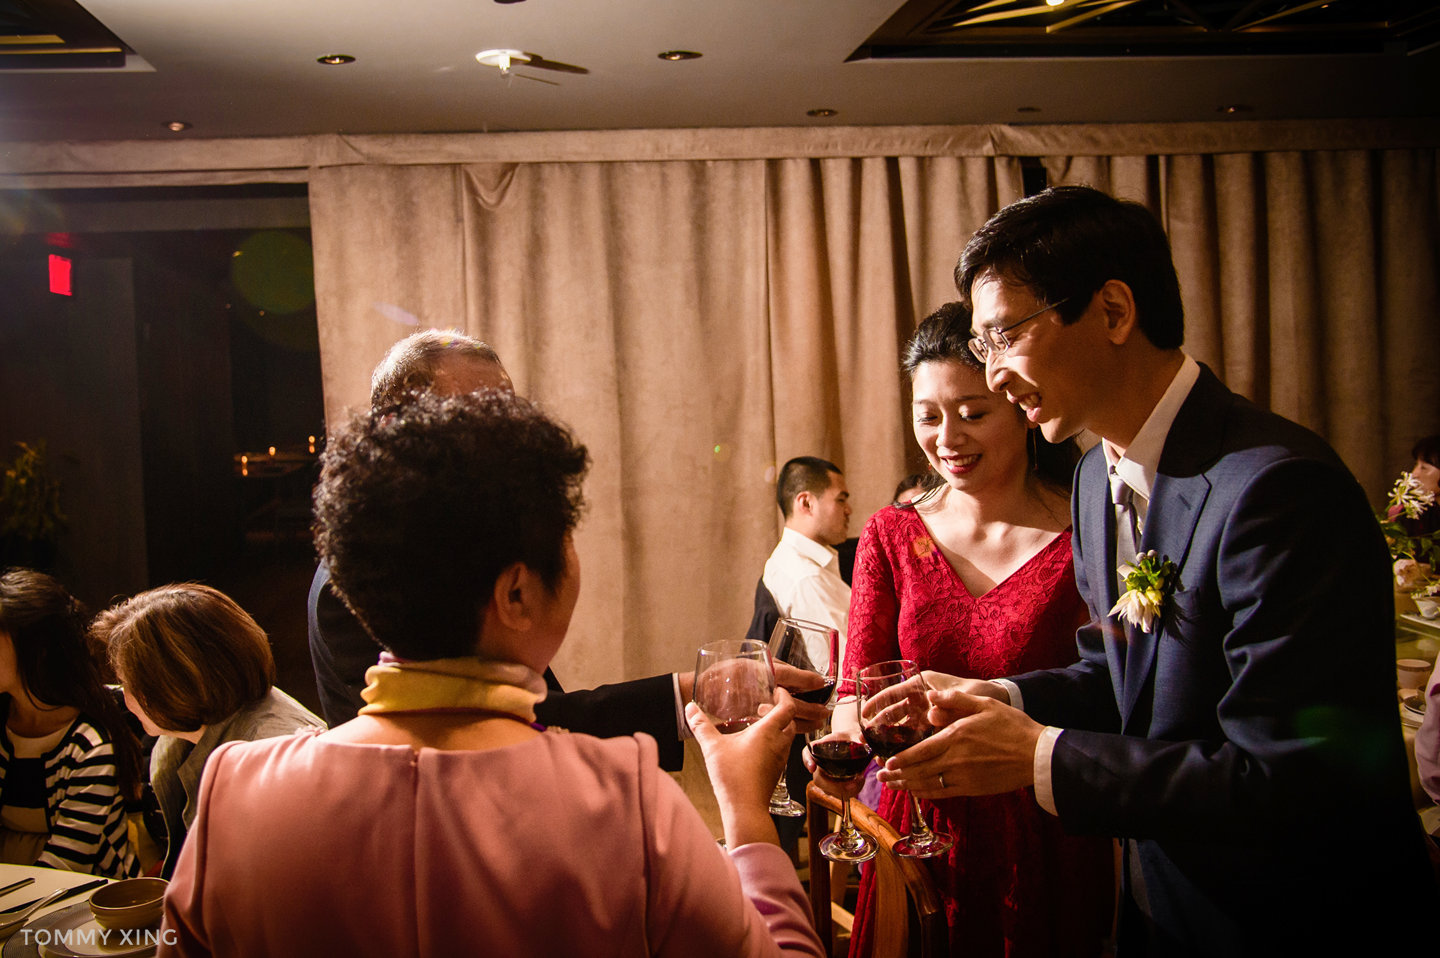 San Francisco Wedding Photography Valley Presbyterian Church WEDDING Tommy Xing Photography 洛杉矶旧金山婚礼婚纱照摄影师117.jpg